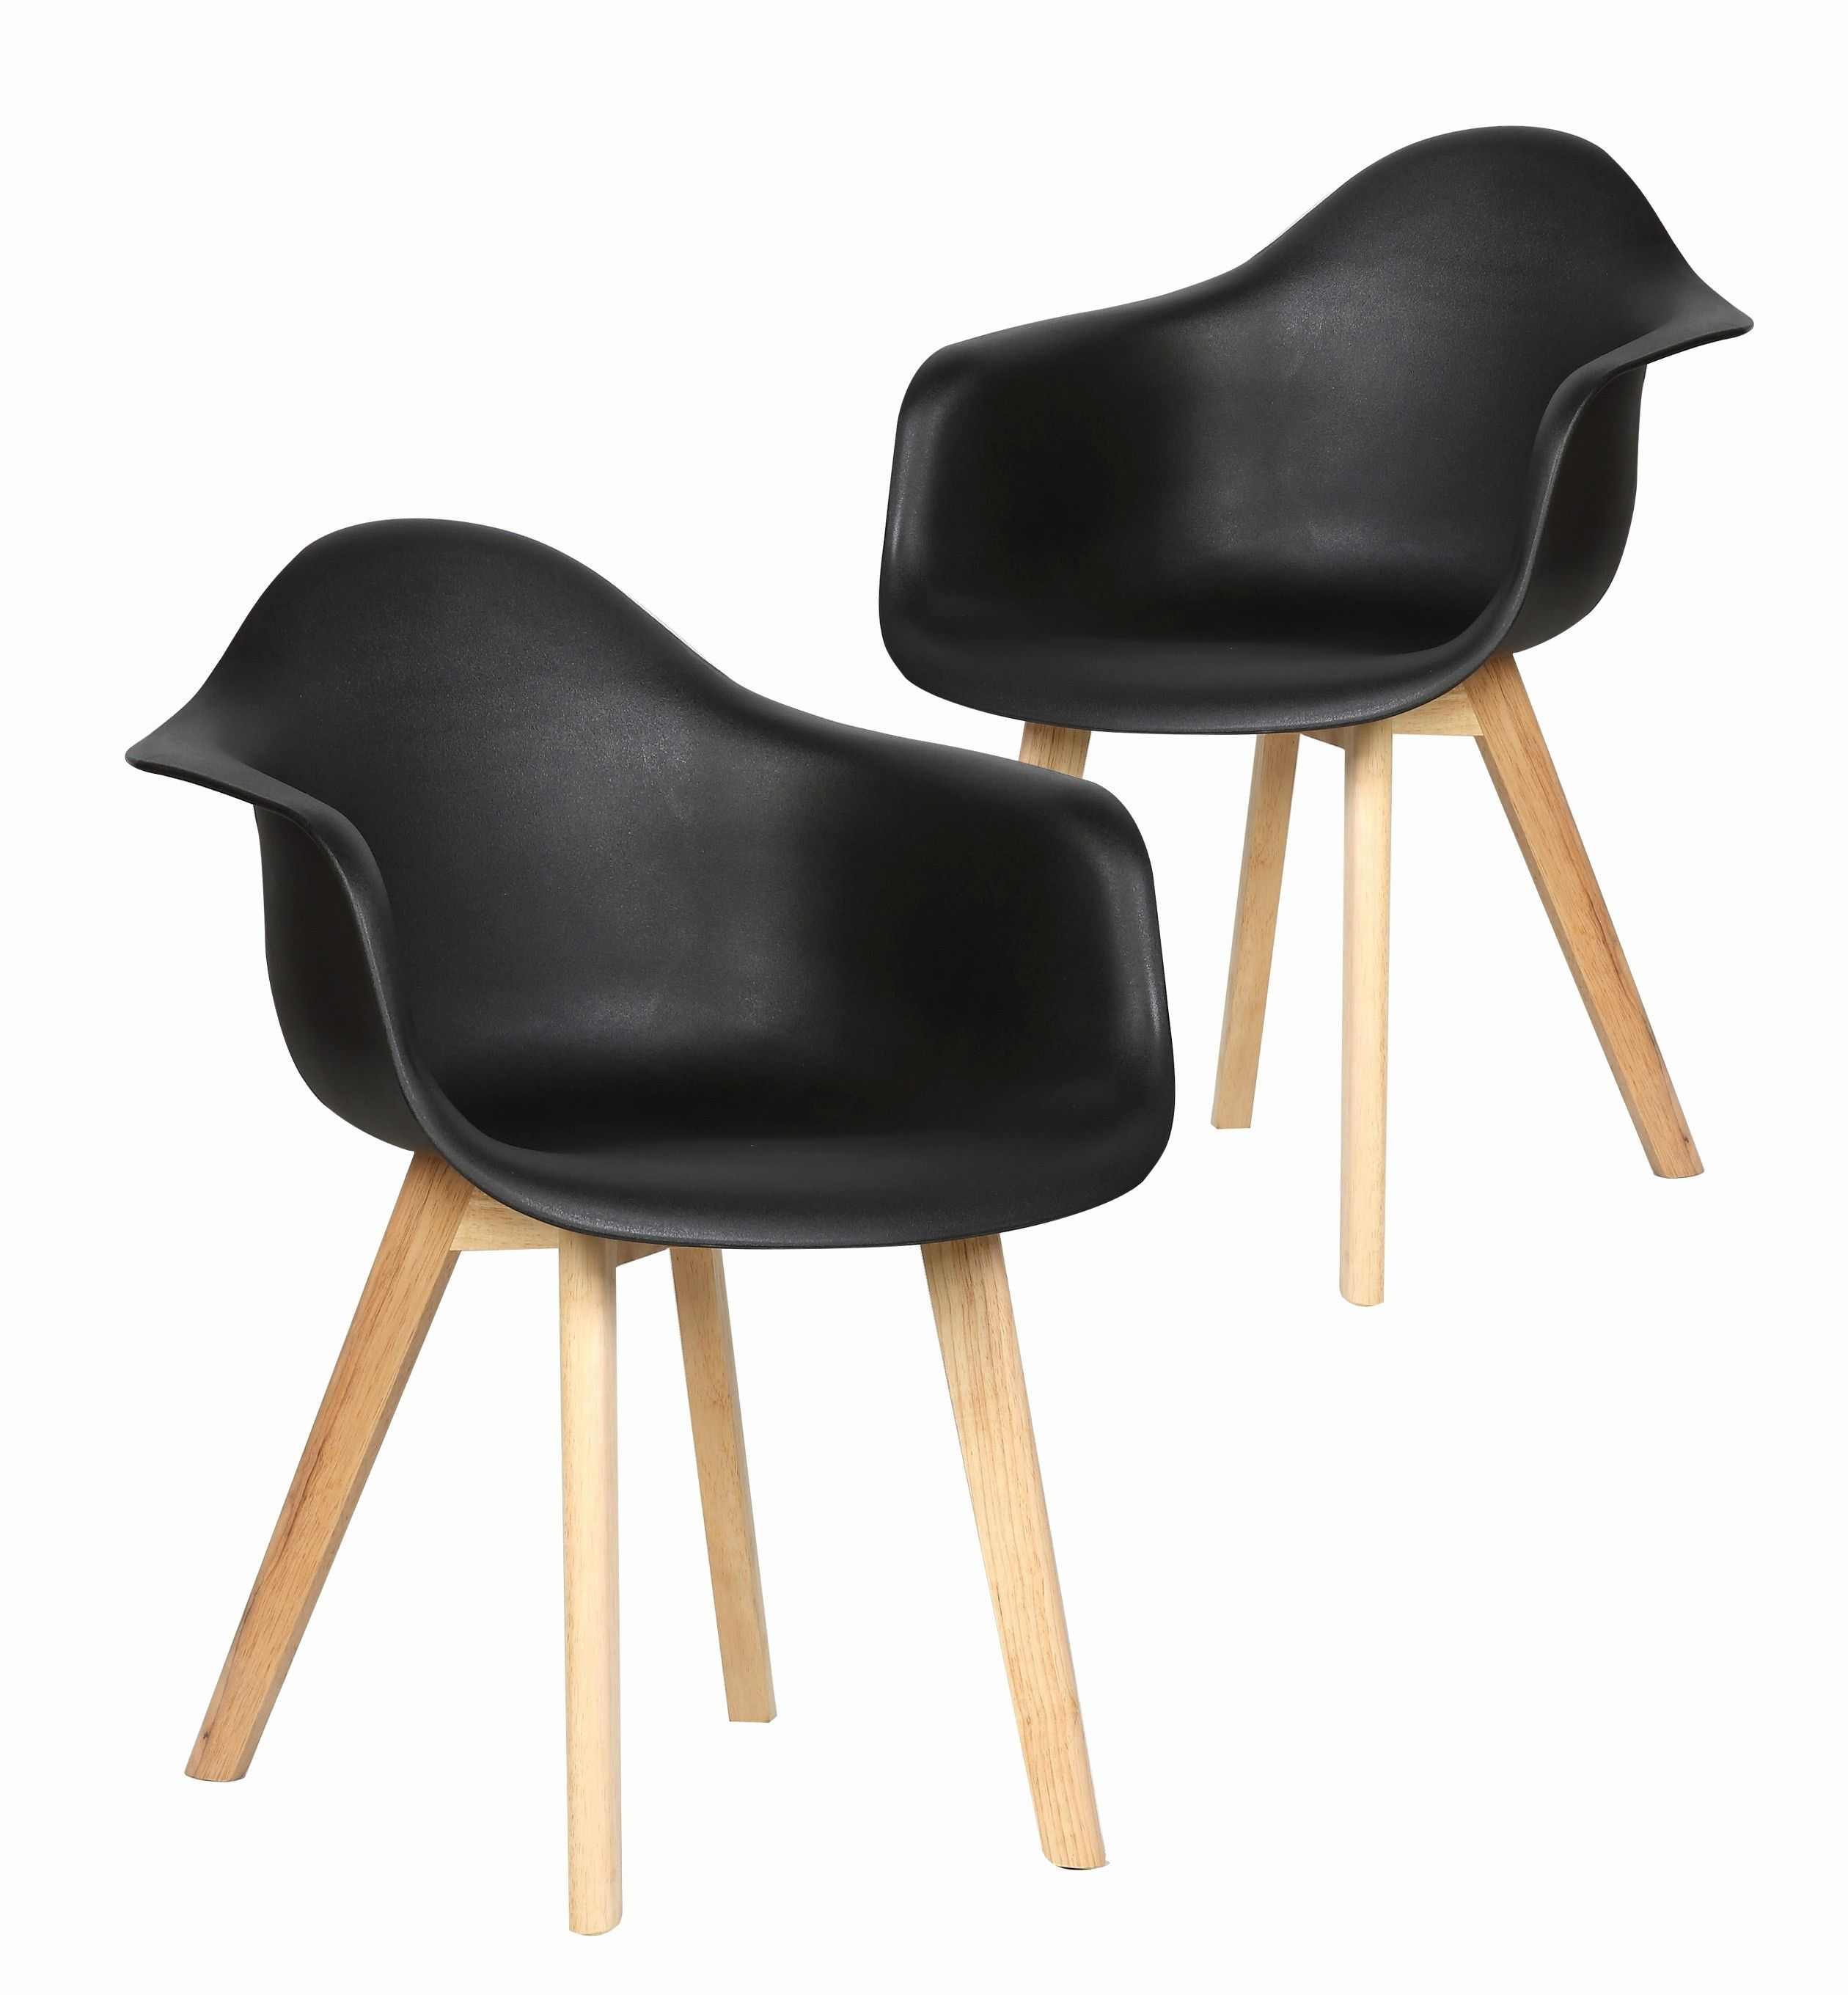 Incroyable Meuble Scandinave Montpellier Bonnes Idees Meuble Scandinave Chaise Style Industriel Chaise Style Scandinave Coussin Fauteuil Jardin